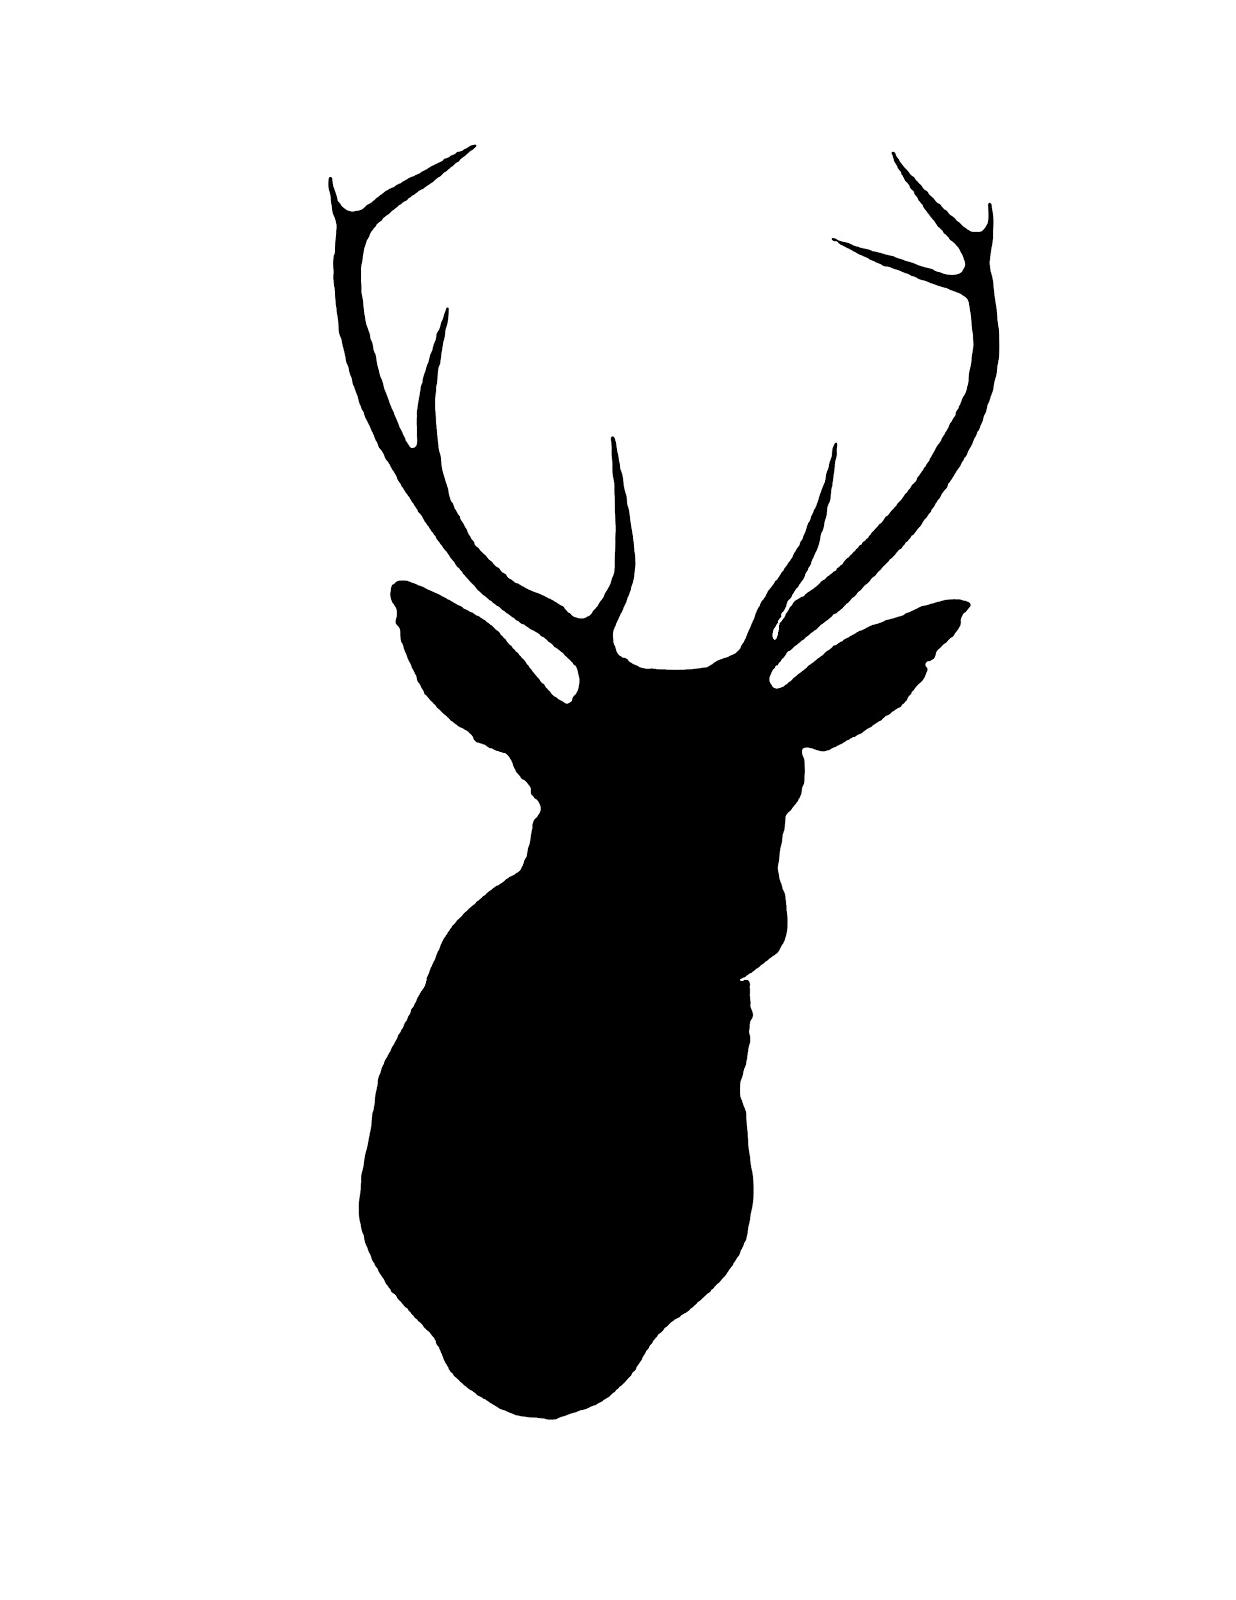 This is an image of Witty Printable Deer Head Silhouette